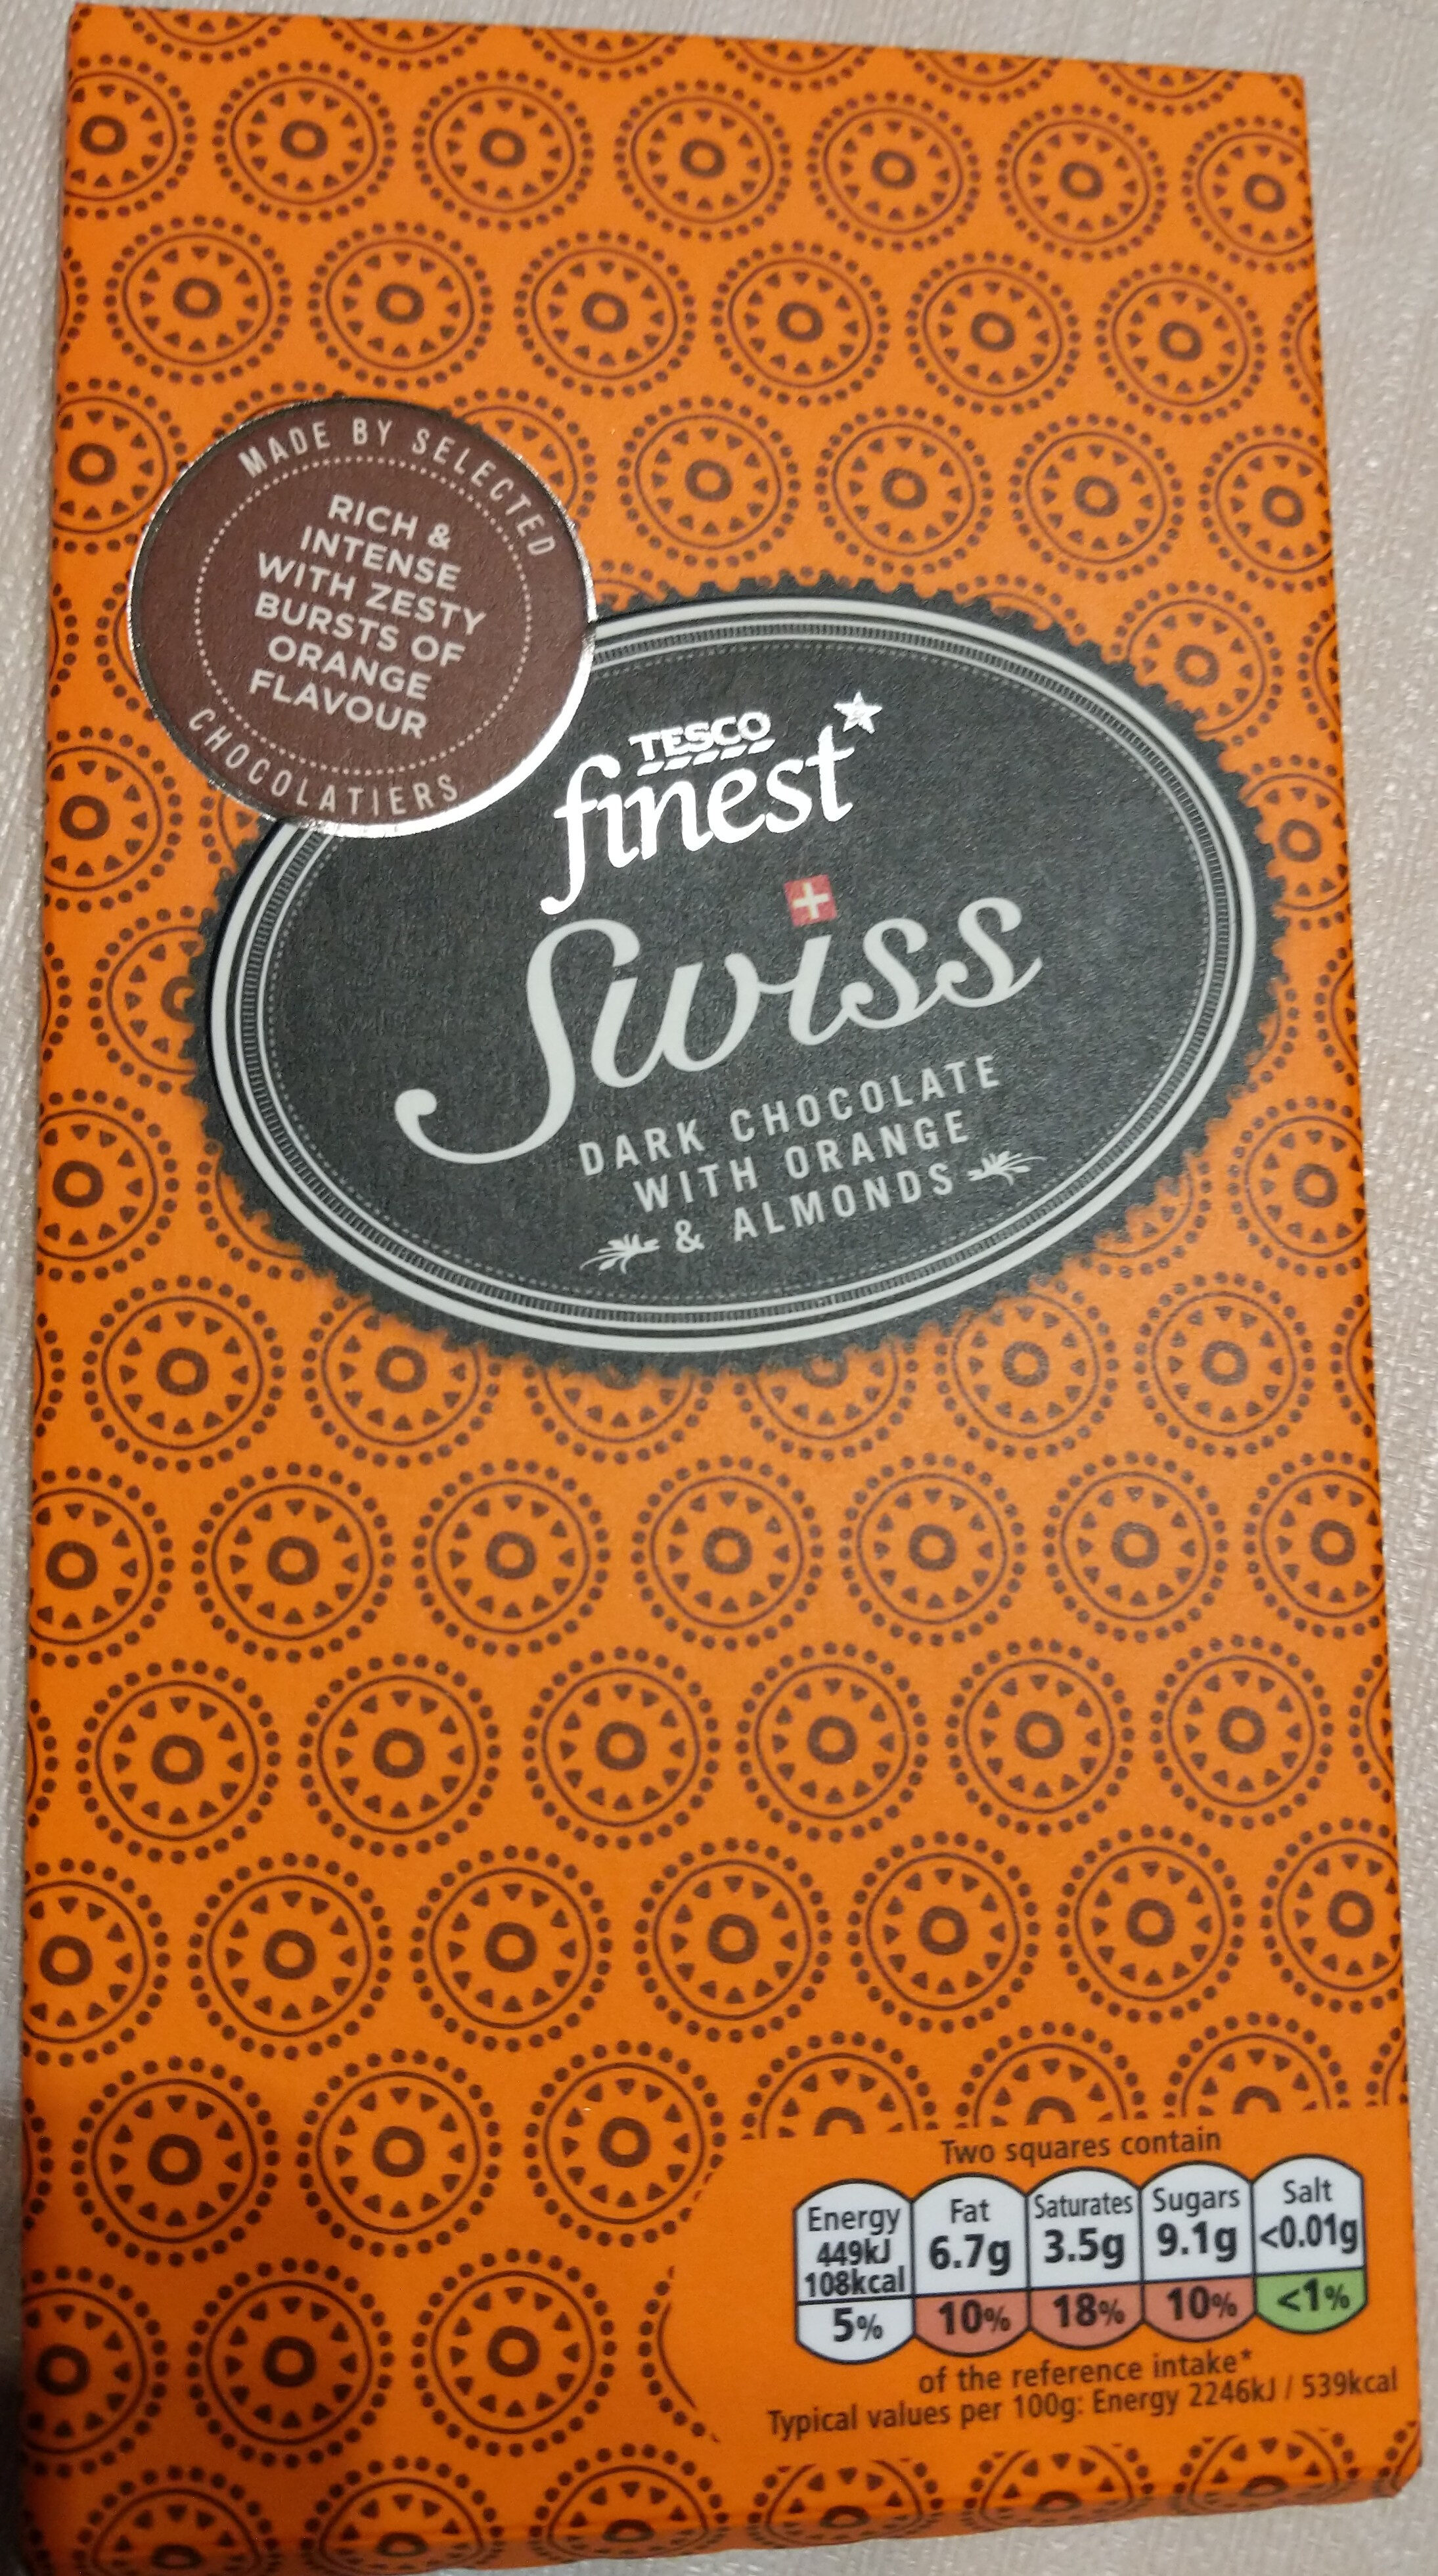 Swiss dark chocolate with orange and almonds - Product - en